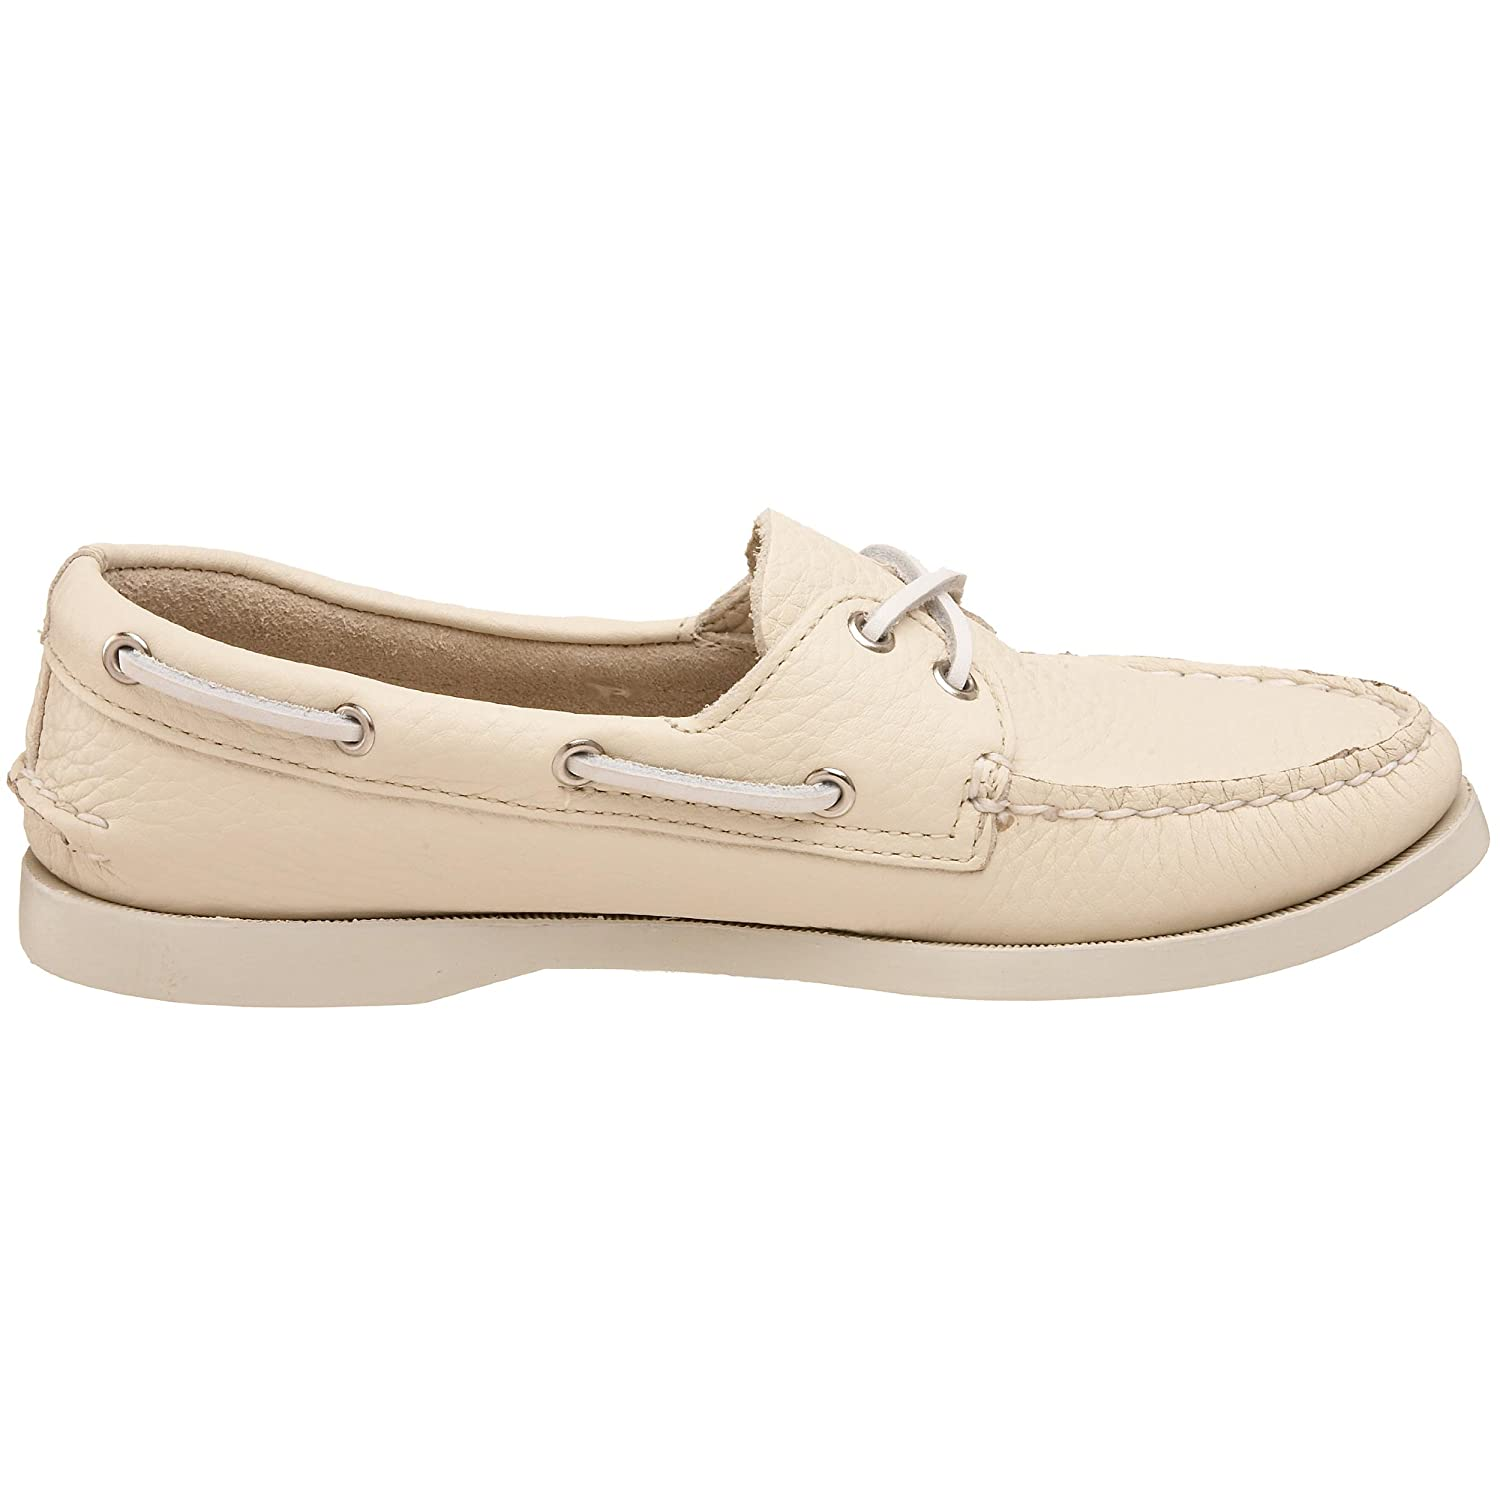 2 Authentic eye 9195017 Sperry Original dCWorxBe